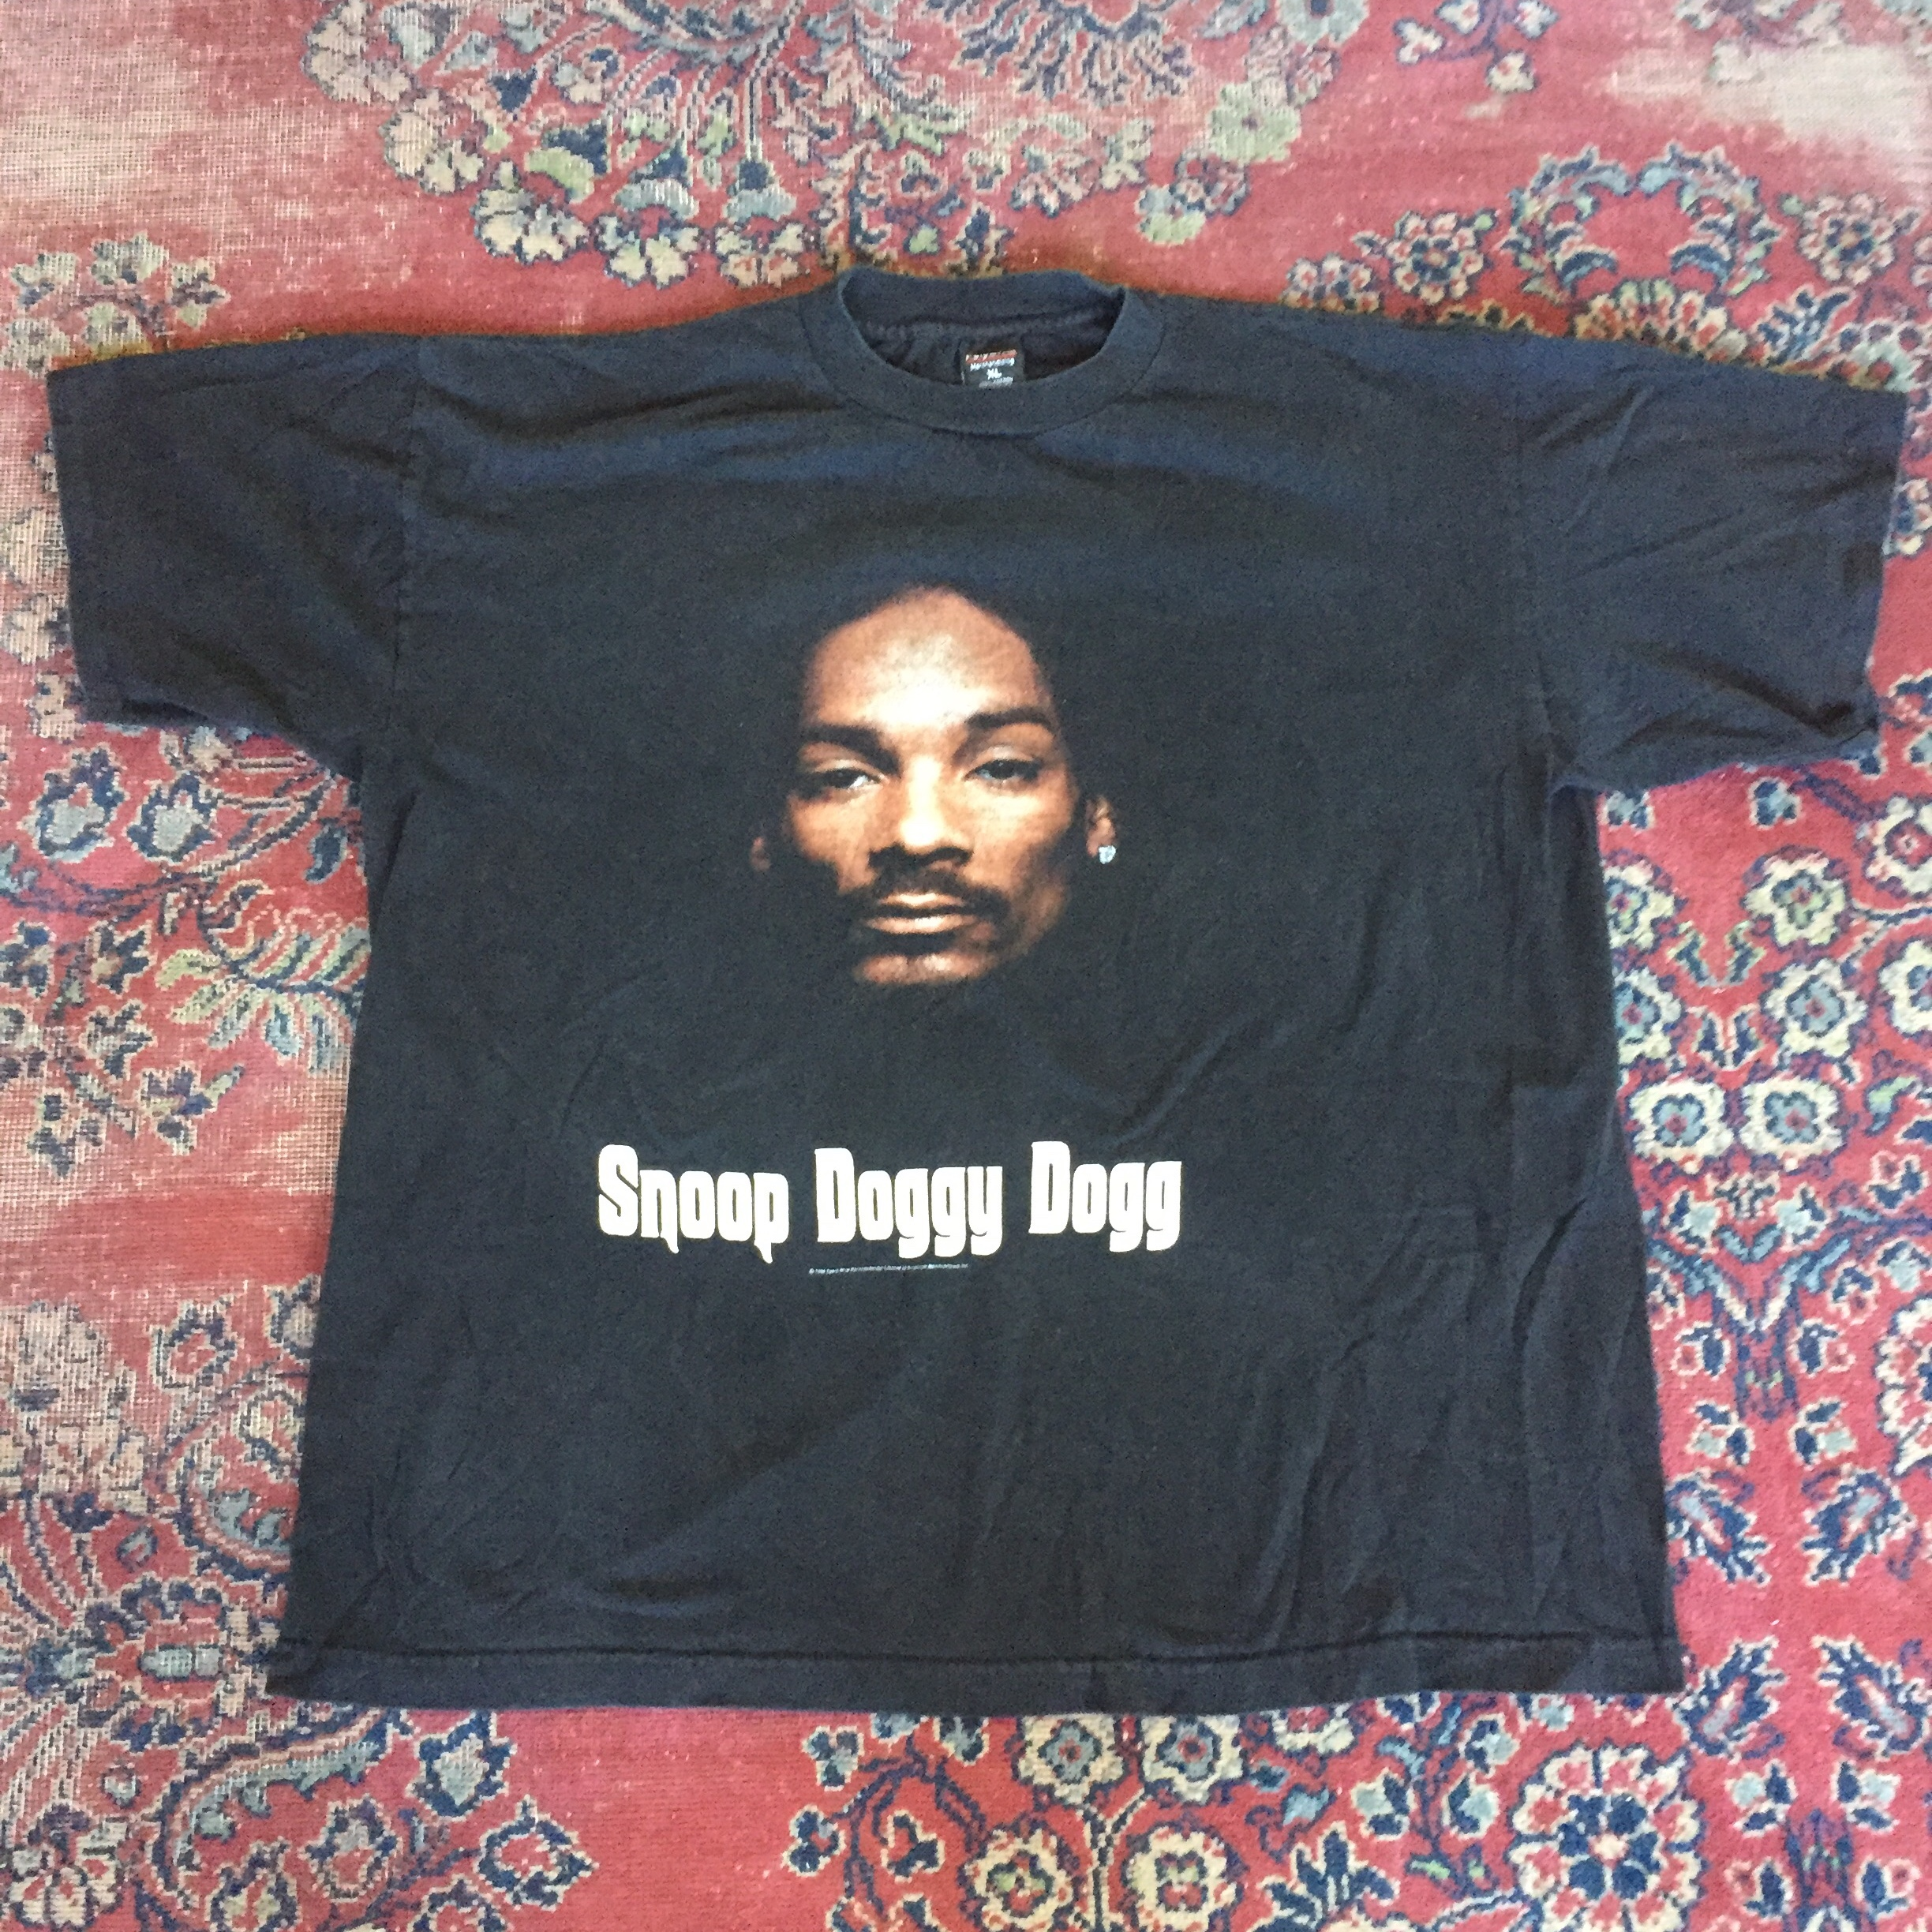 Authentic vintage 1996 Snoop Doggy Dogg 'Tha    - Depop